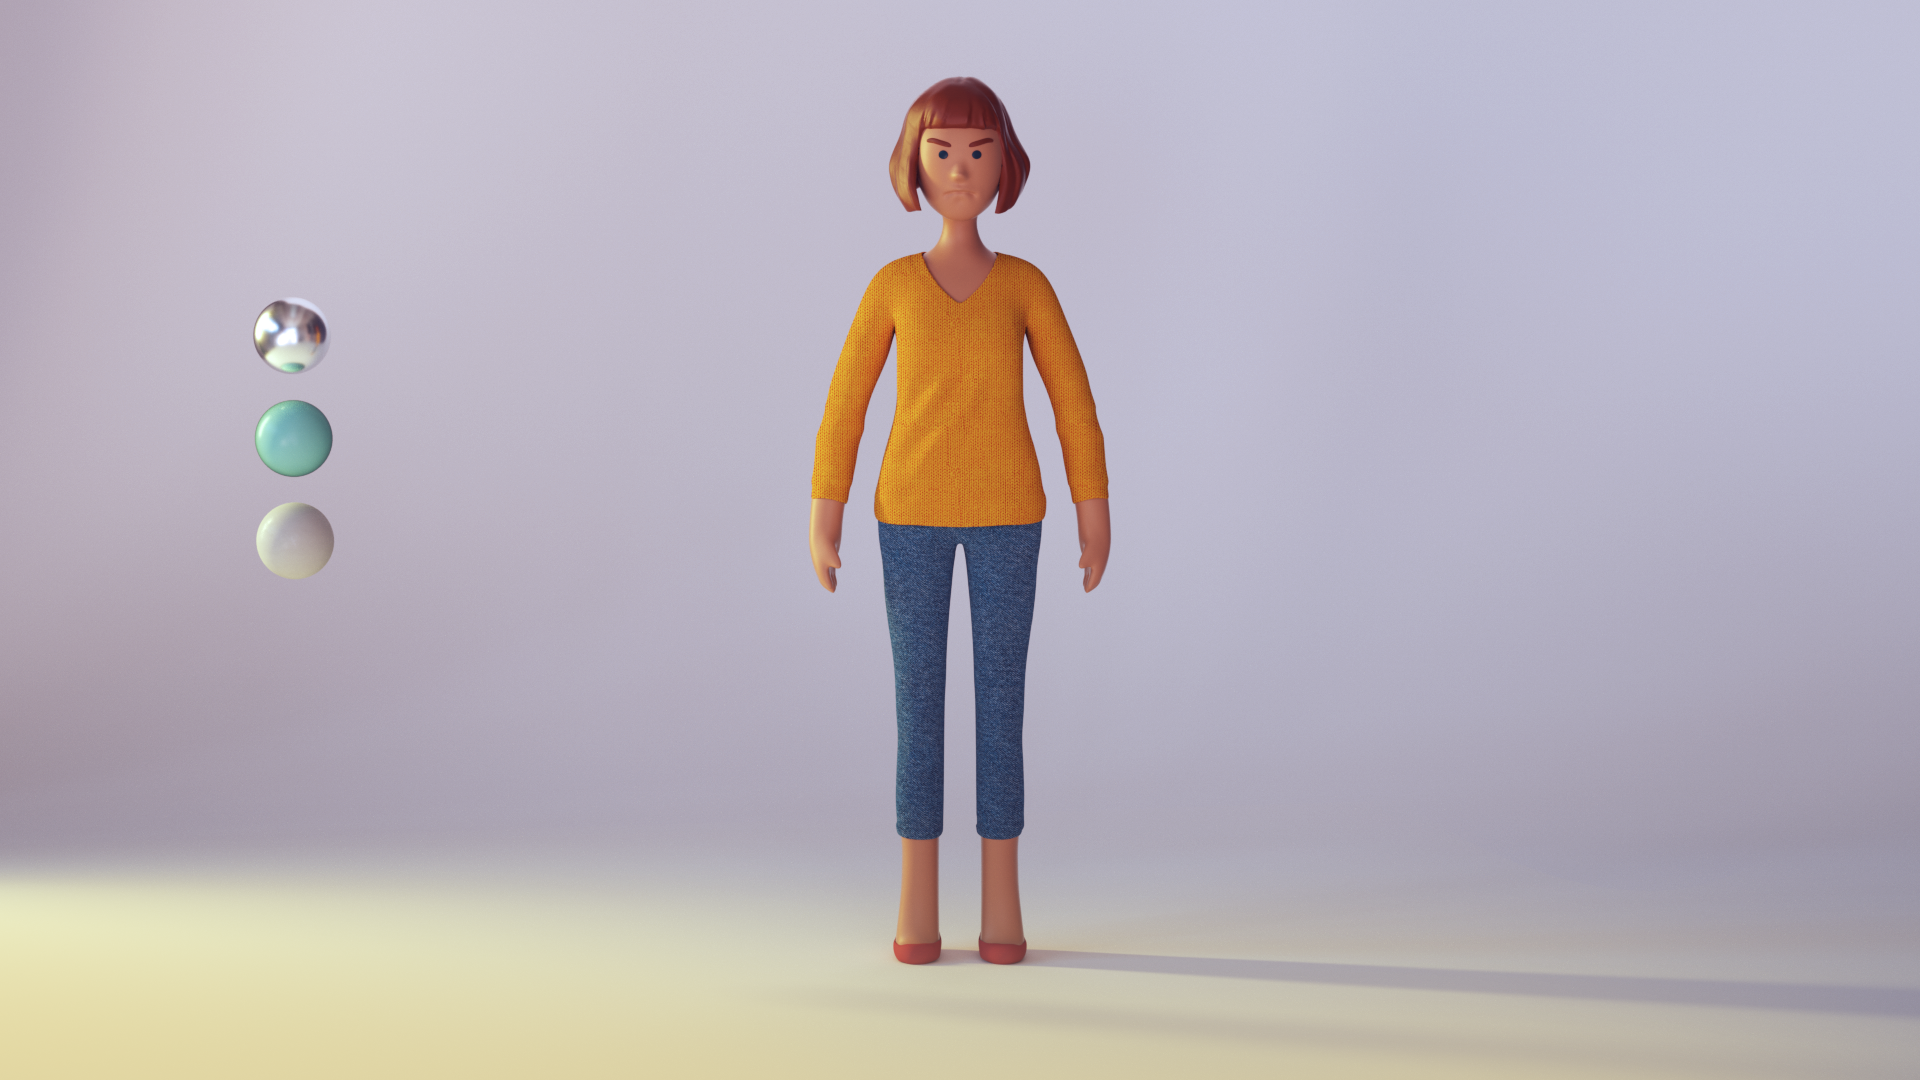 Girl_01-Recovered.png